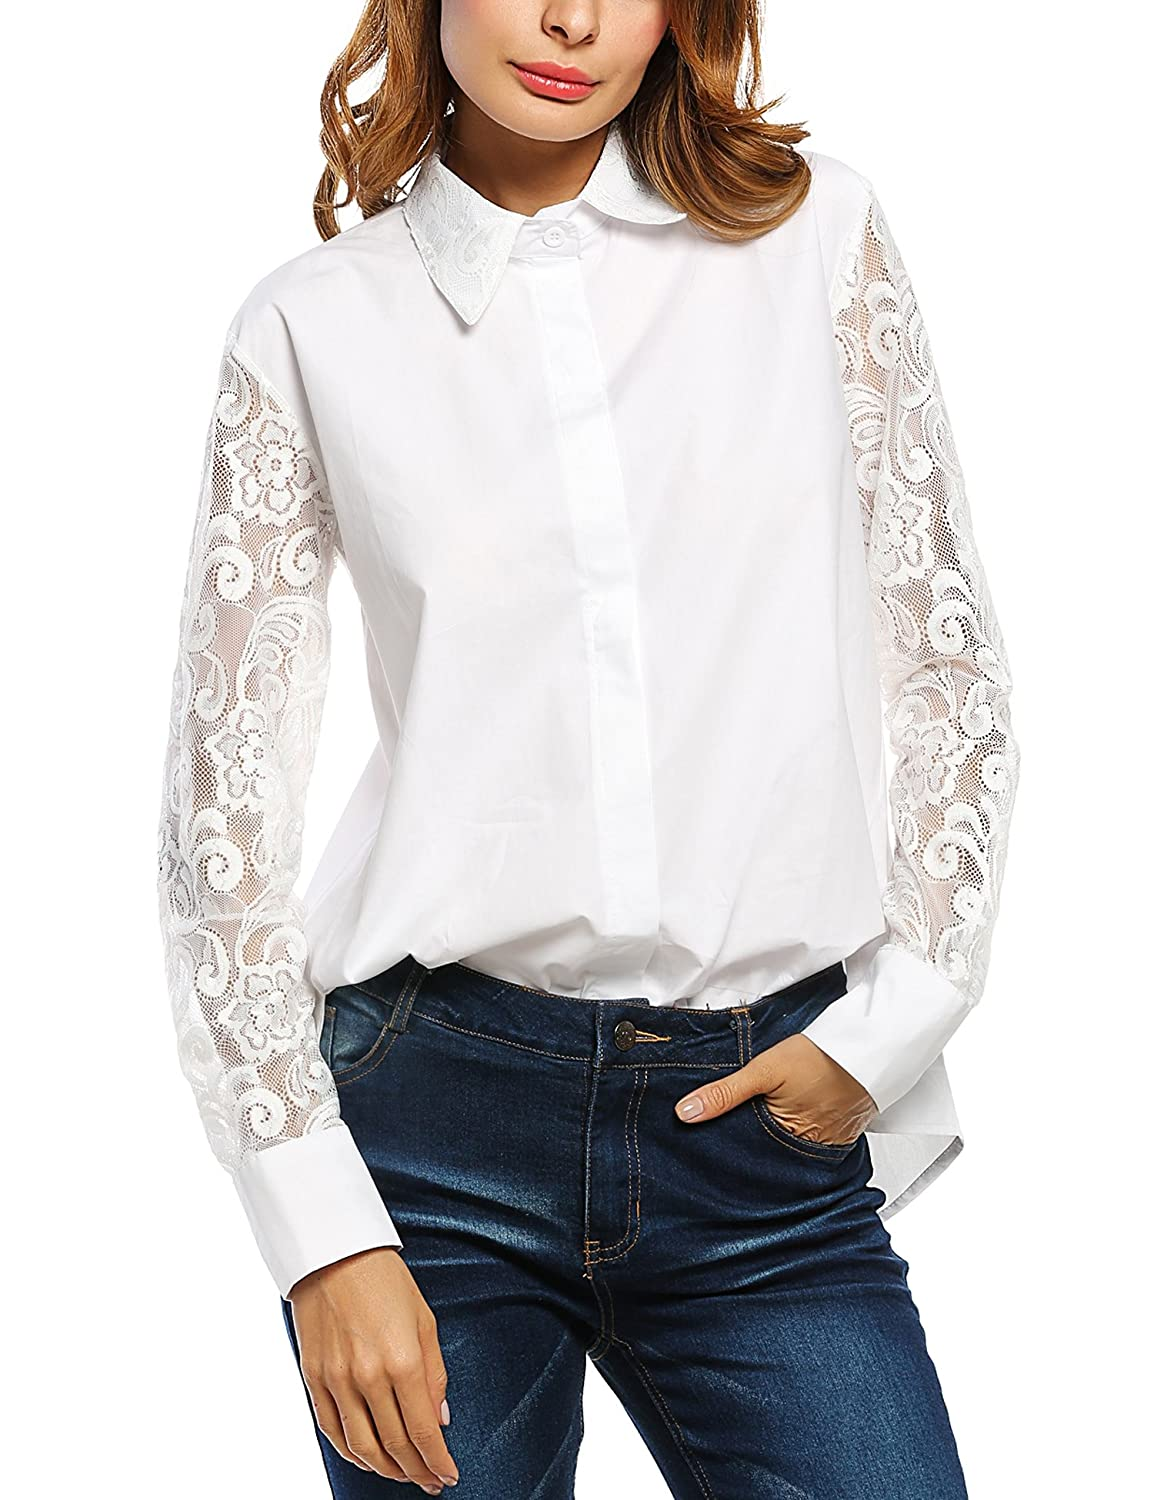 Victorian Blouses, Tops, Shirts, Vests Zeagoo Womens Button Down Shirt Long Sleeve Blouse Patchwork Lace Shirt Top $20.99 AT vintagedancer.com